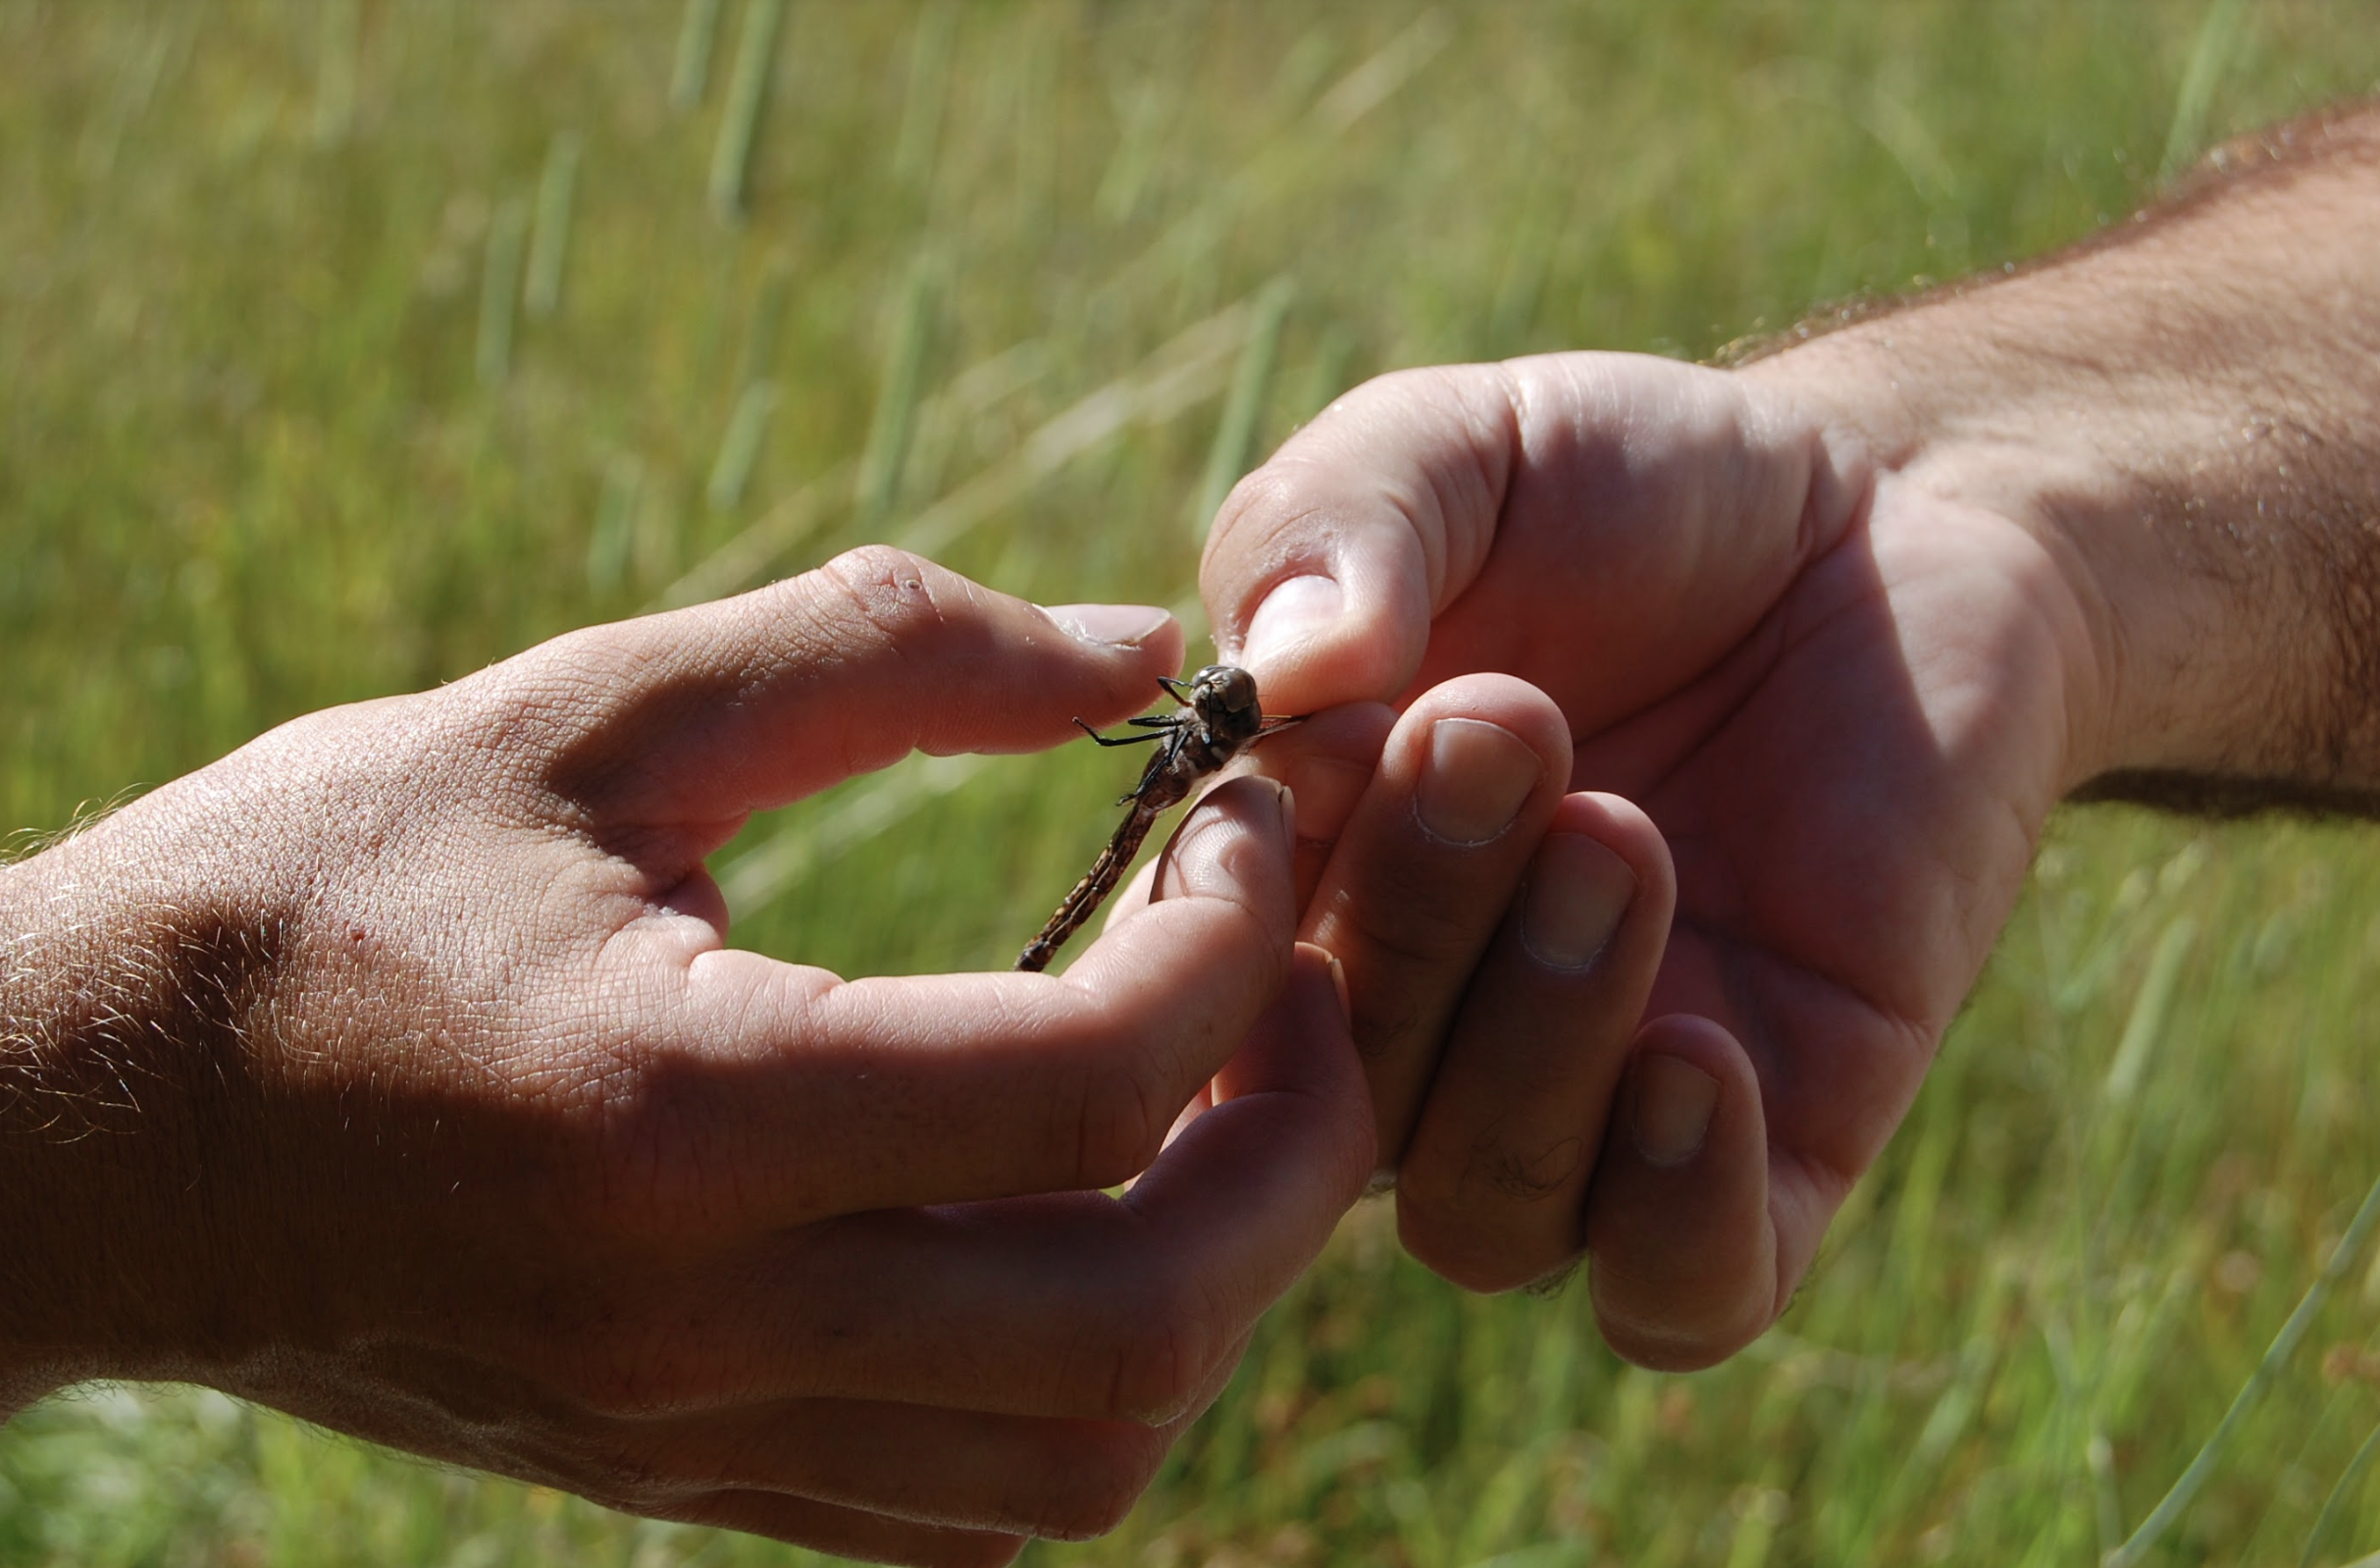 Working together to identify species. Photo By Lilia Letsch.